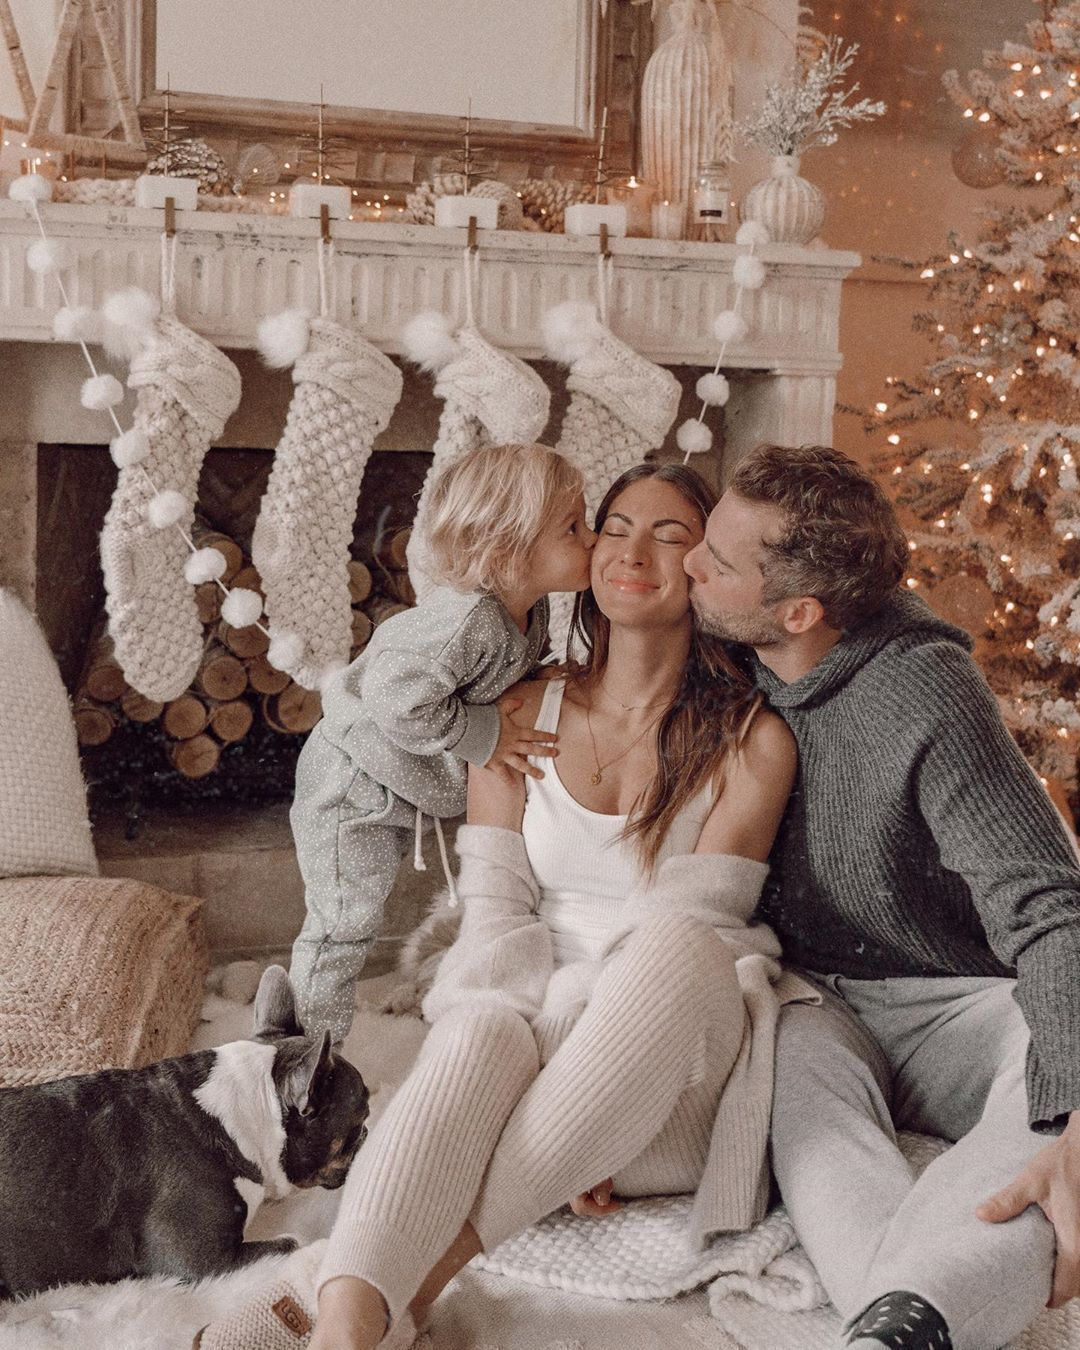 Snaps with my favorites ⛄ so, so grateful for this life with my boys. such a gift, and wow, what a feeling to know this much l o v e ! sending you each a whole lotta hugs + light this week. merry, merry ???? | Maternity Photography Family jeans | maternity photography jeans outfit #christmas #holidays #christmasmagic #family #love #halloween photography family